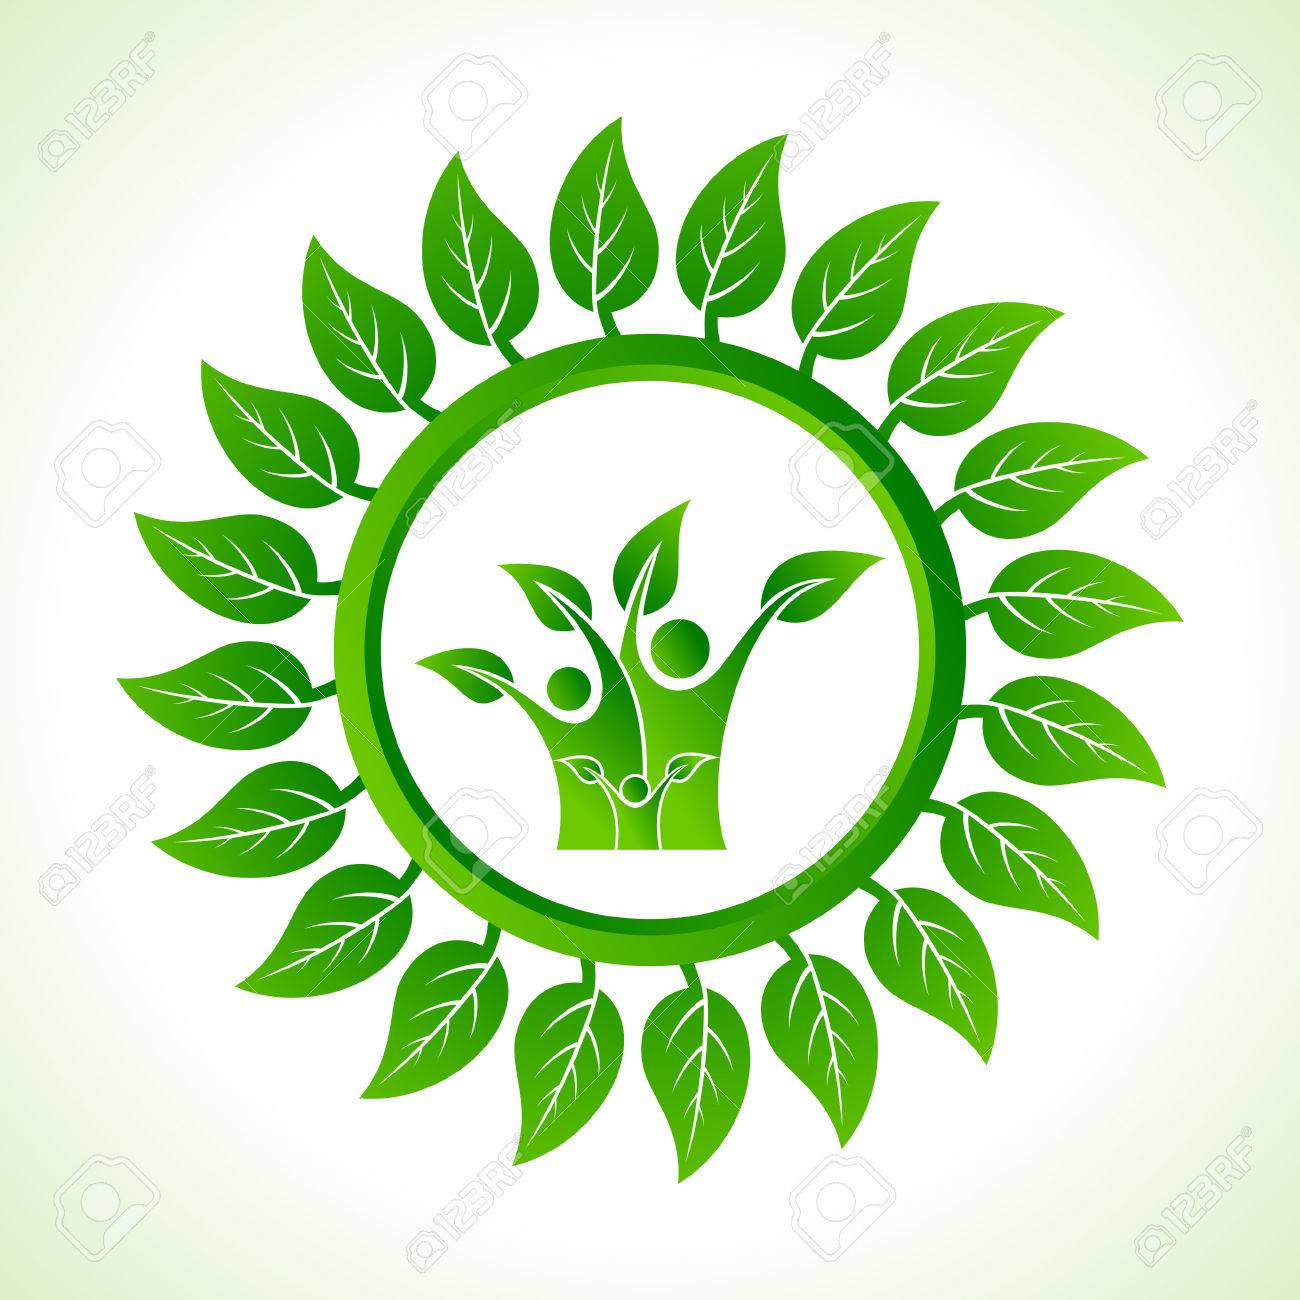 Eco family inside the leaf background stock vector Stock Vector - 22632233